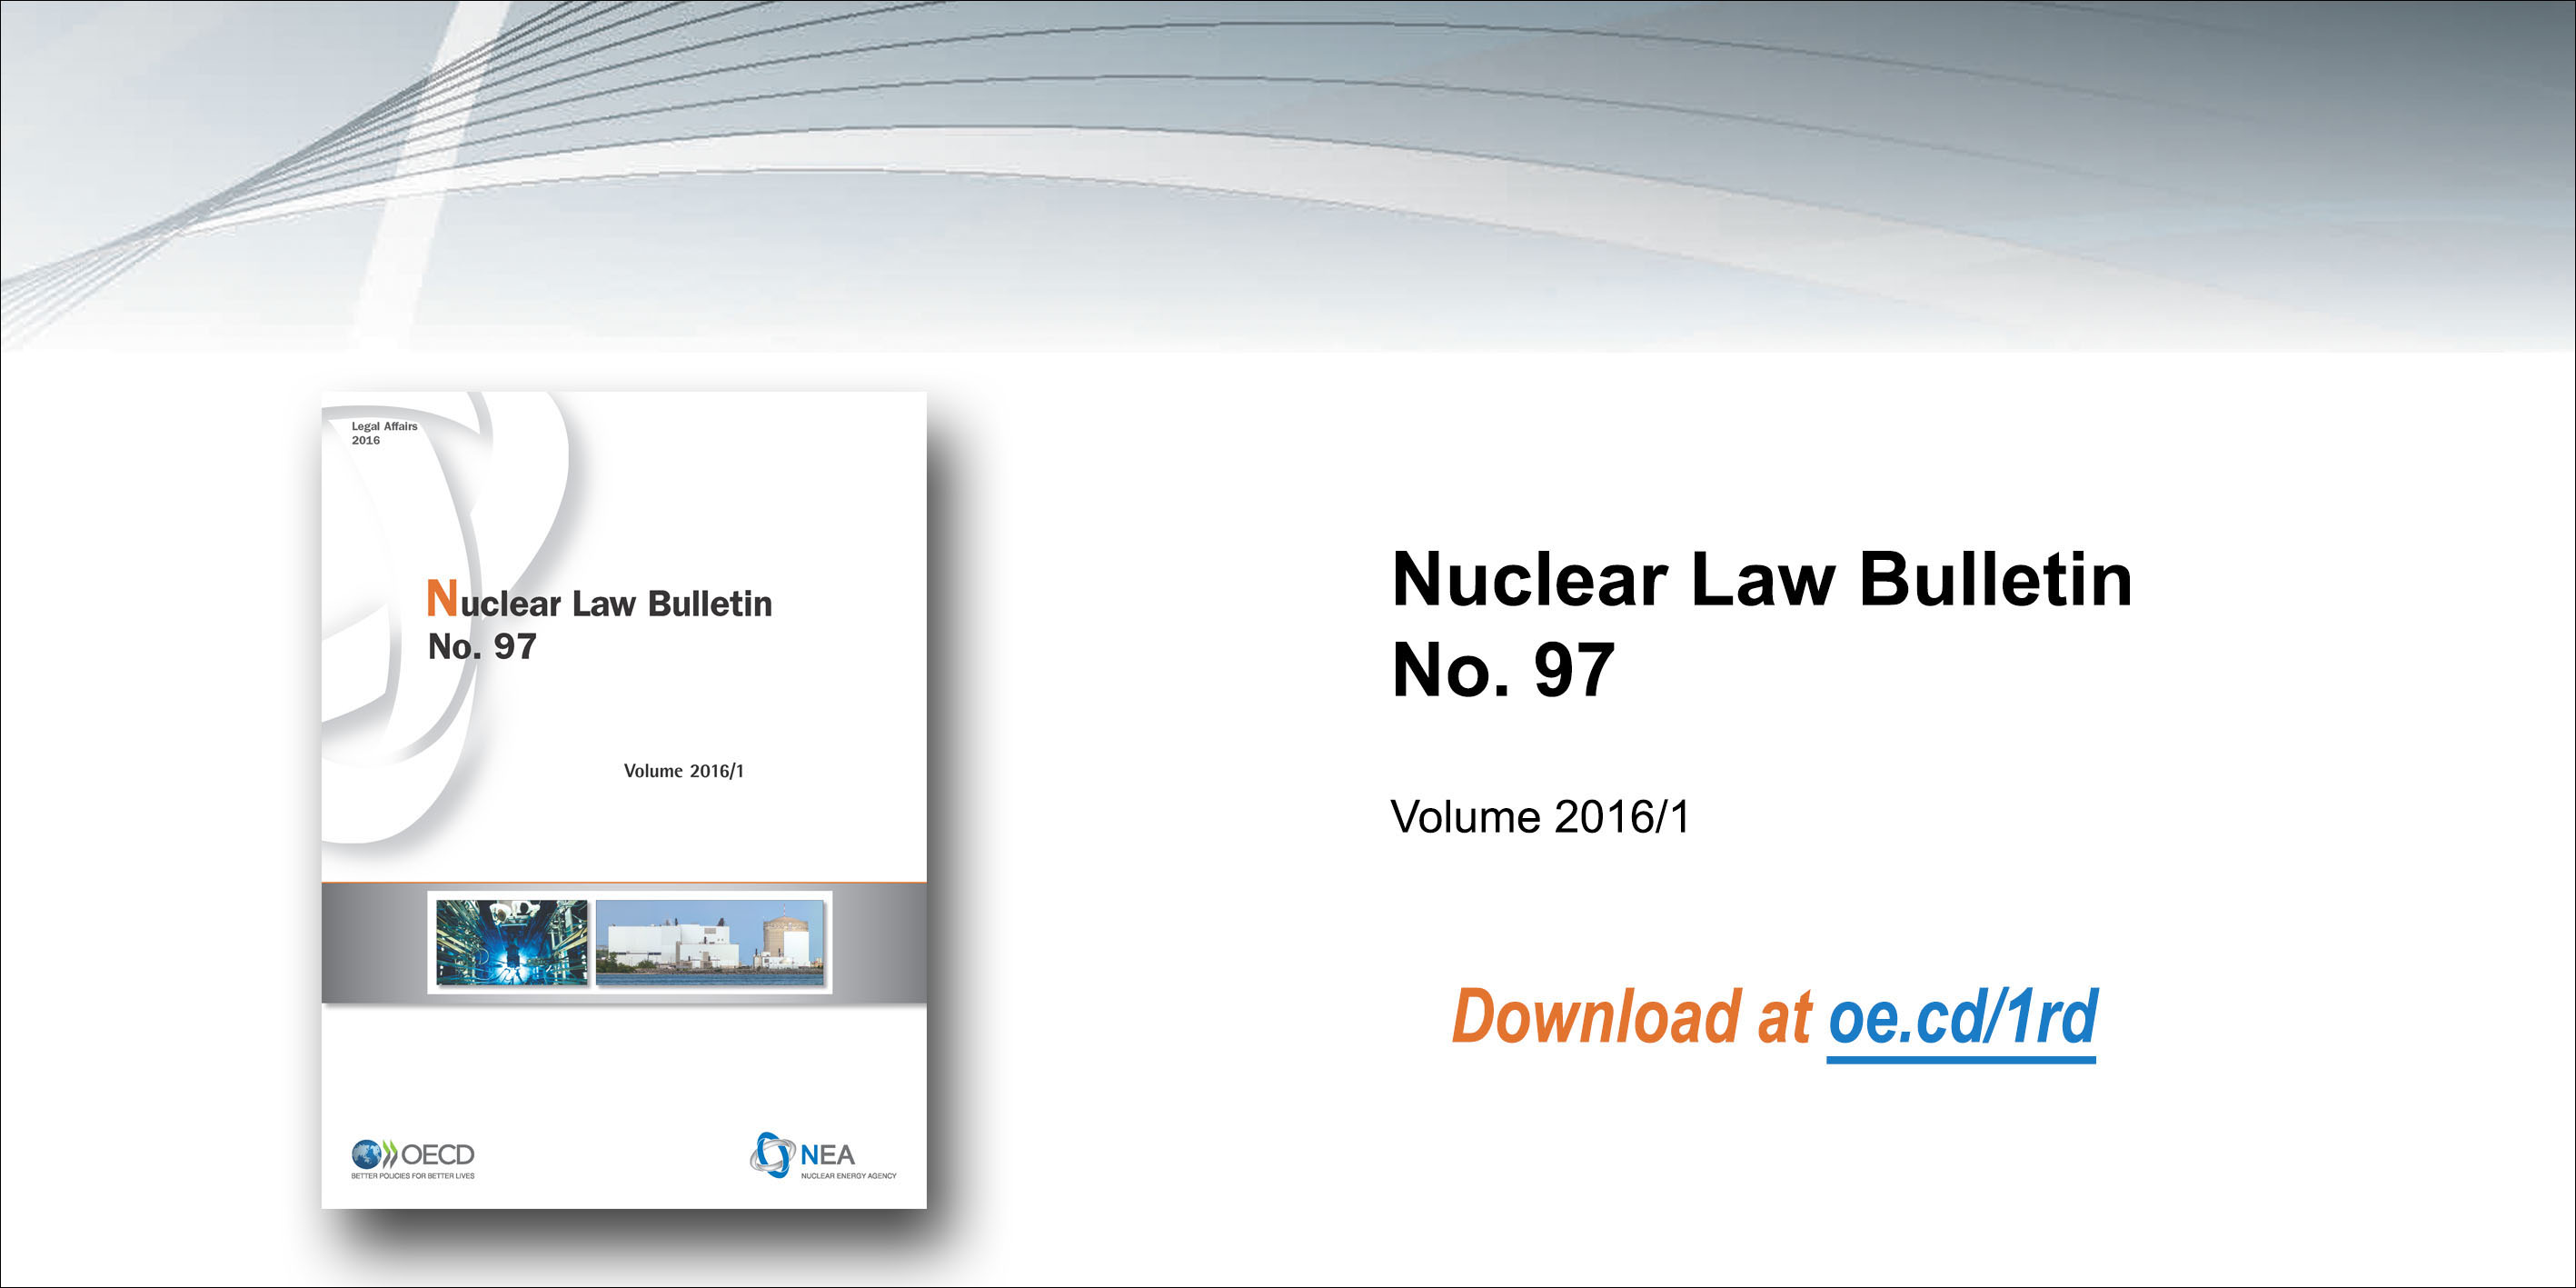 Nuclear Law Bulletin, No. 97